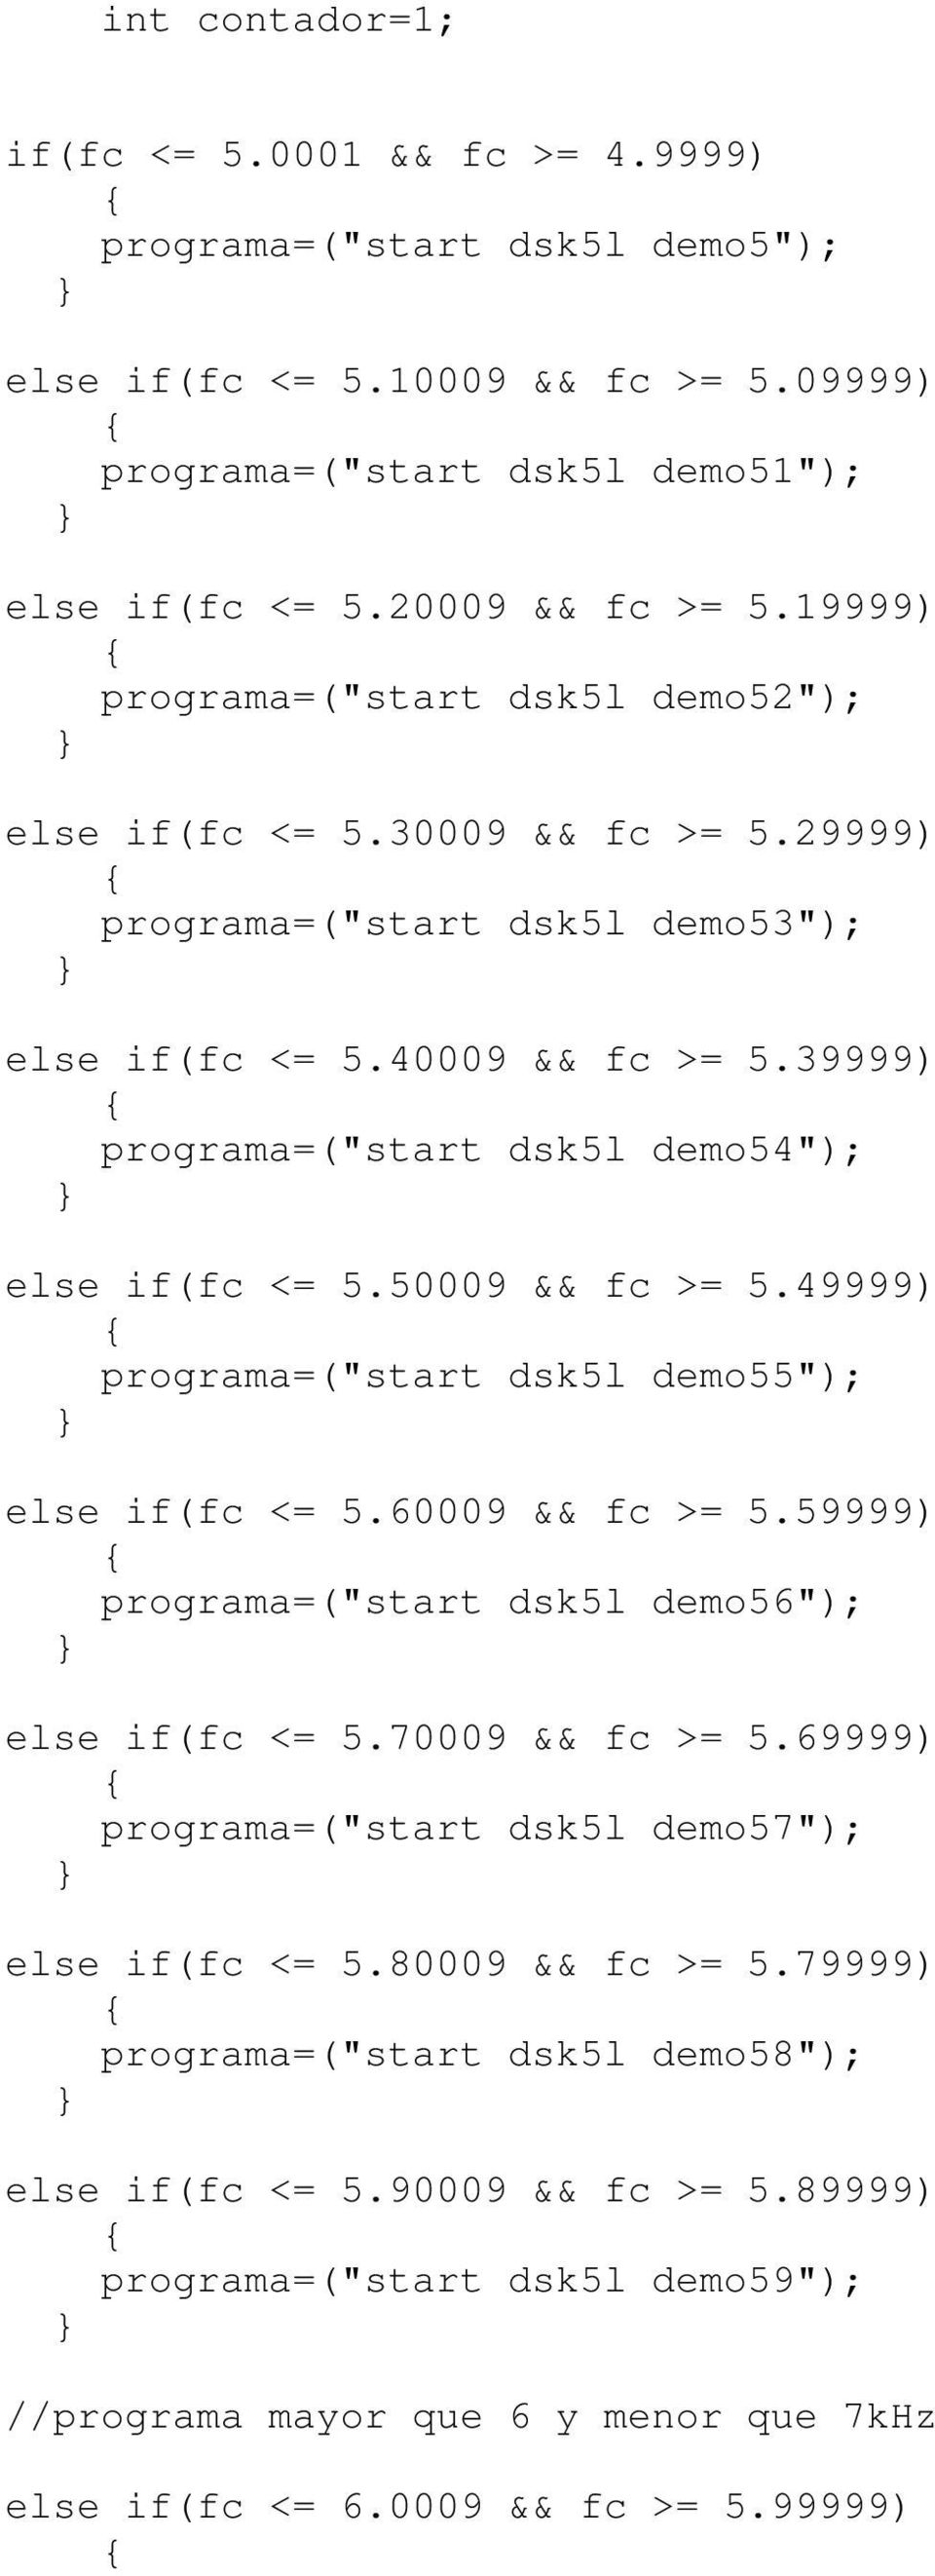 "39999) programa=(""start dsk5l demo54""); else if(fc <= 5.50009 && fc >= 5.49999) programa=(""start dsk5l demo55""); else if(fc <= 5.60009 && fc >= 5."